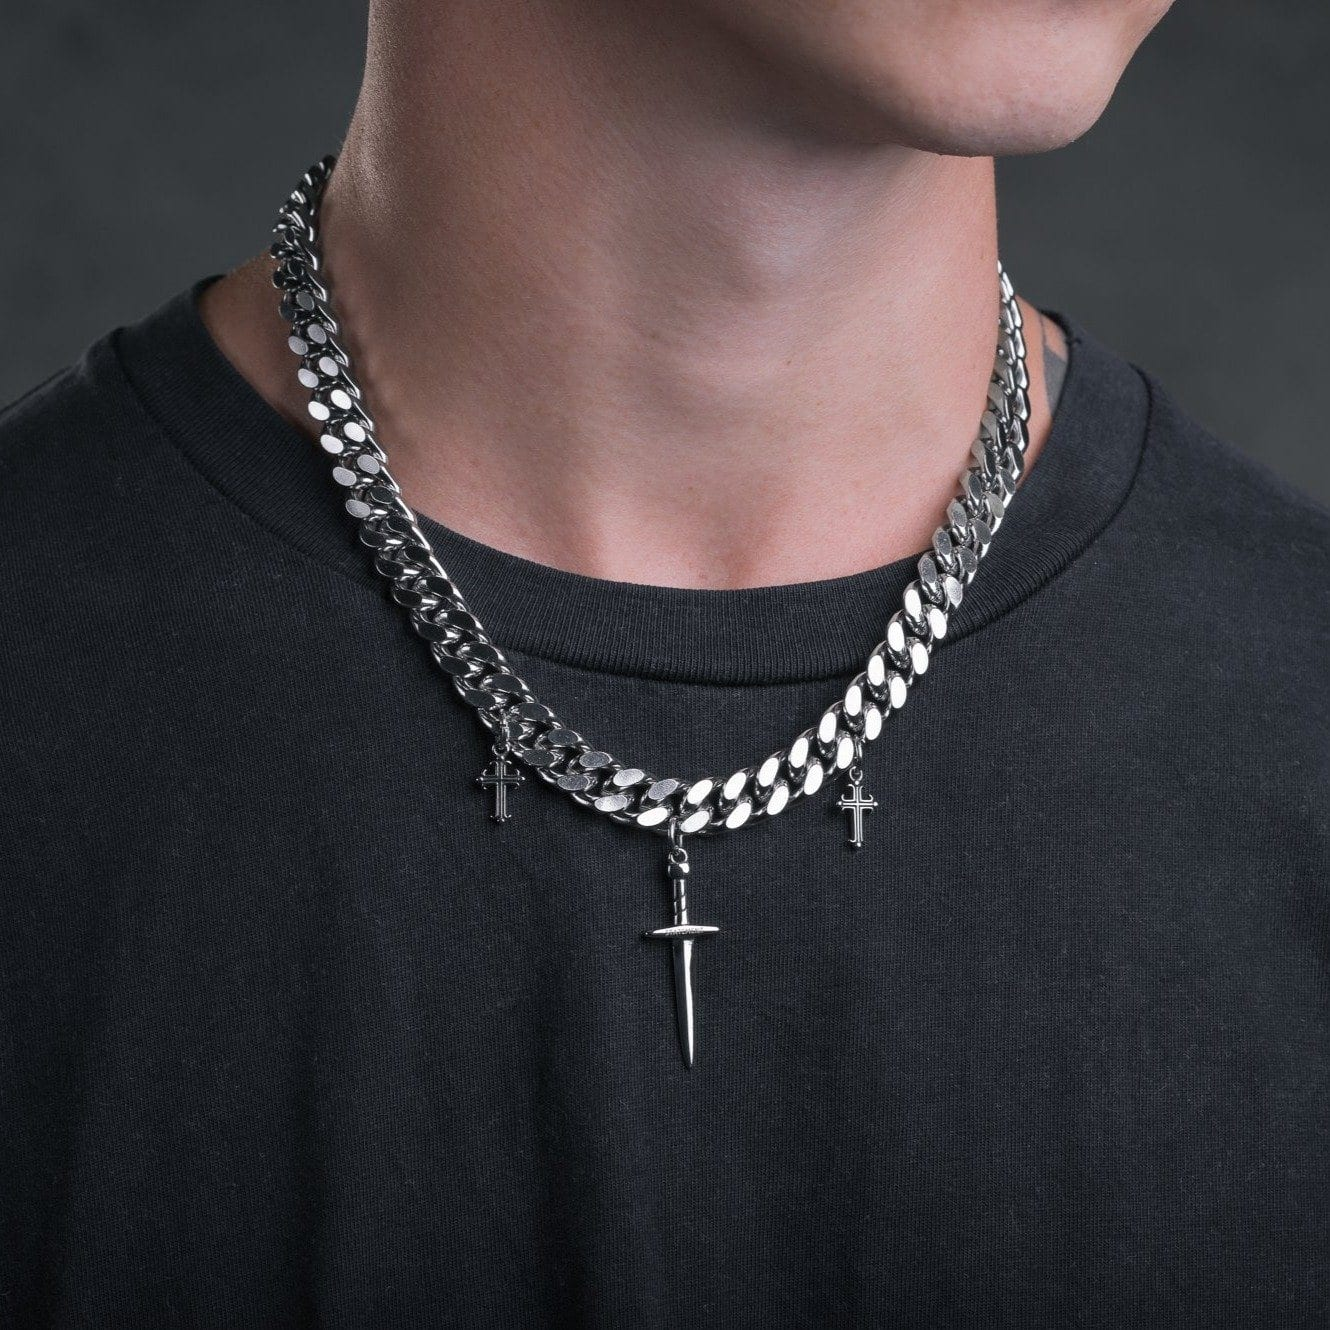 Cuban Link Chain Necklace With Dagger Pendants_01